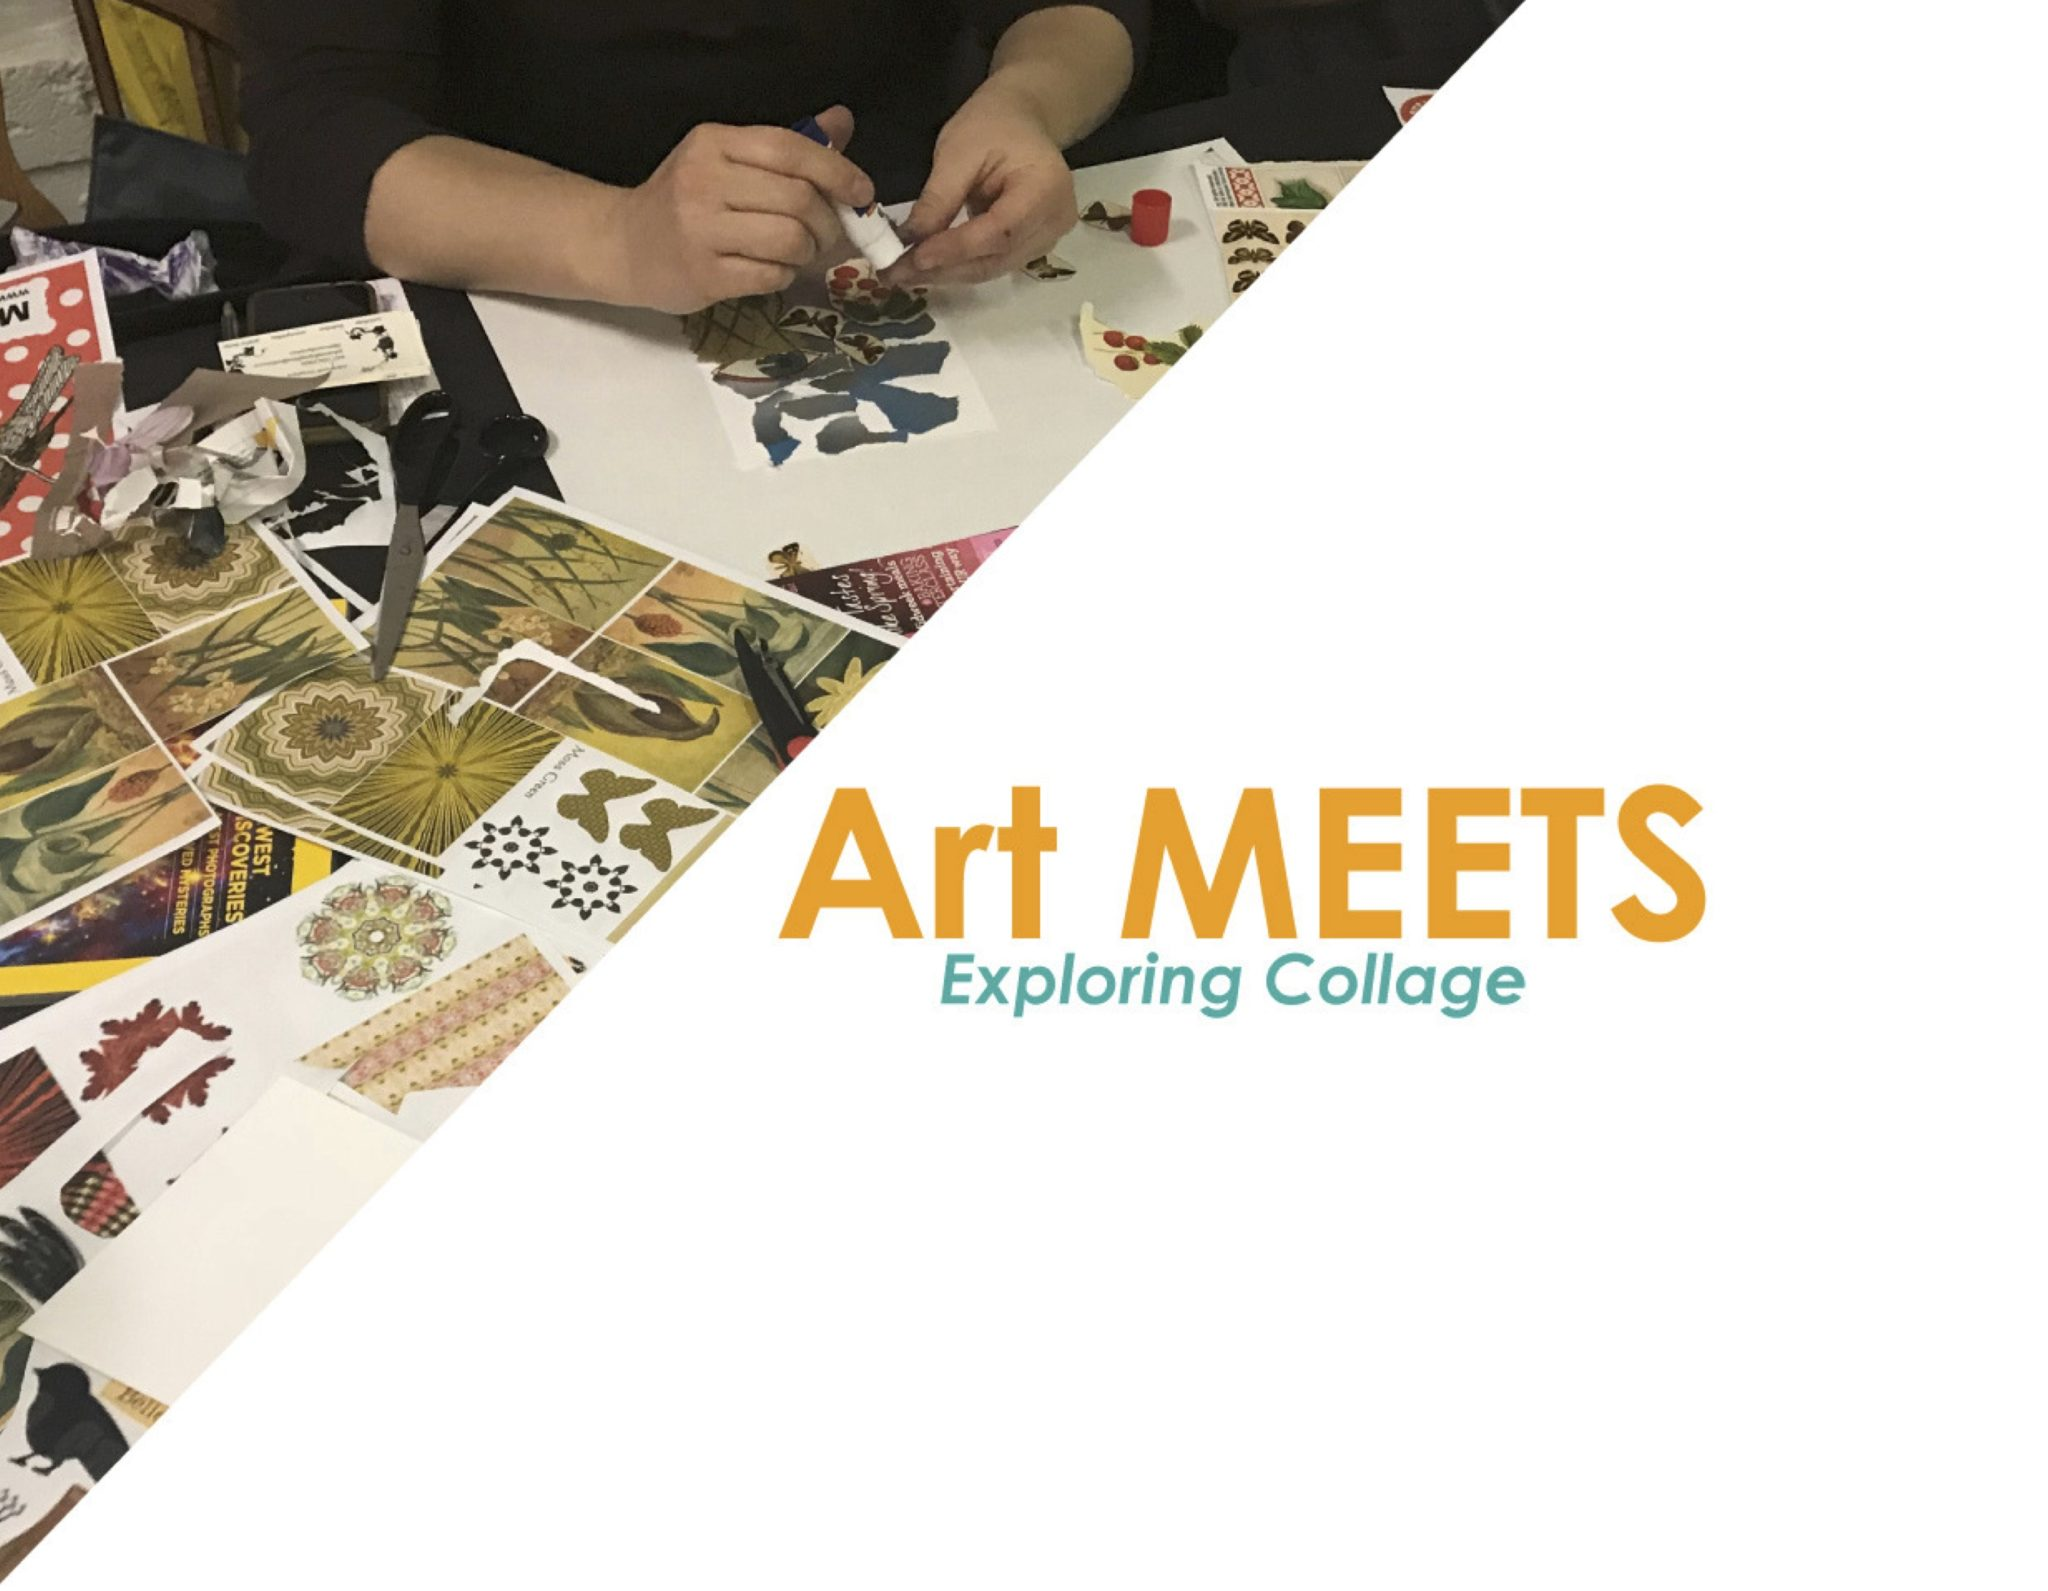 Art MEETS: Exploring Collage